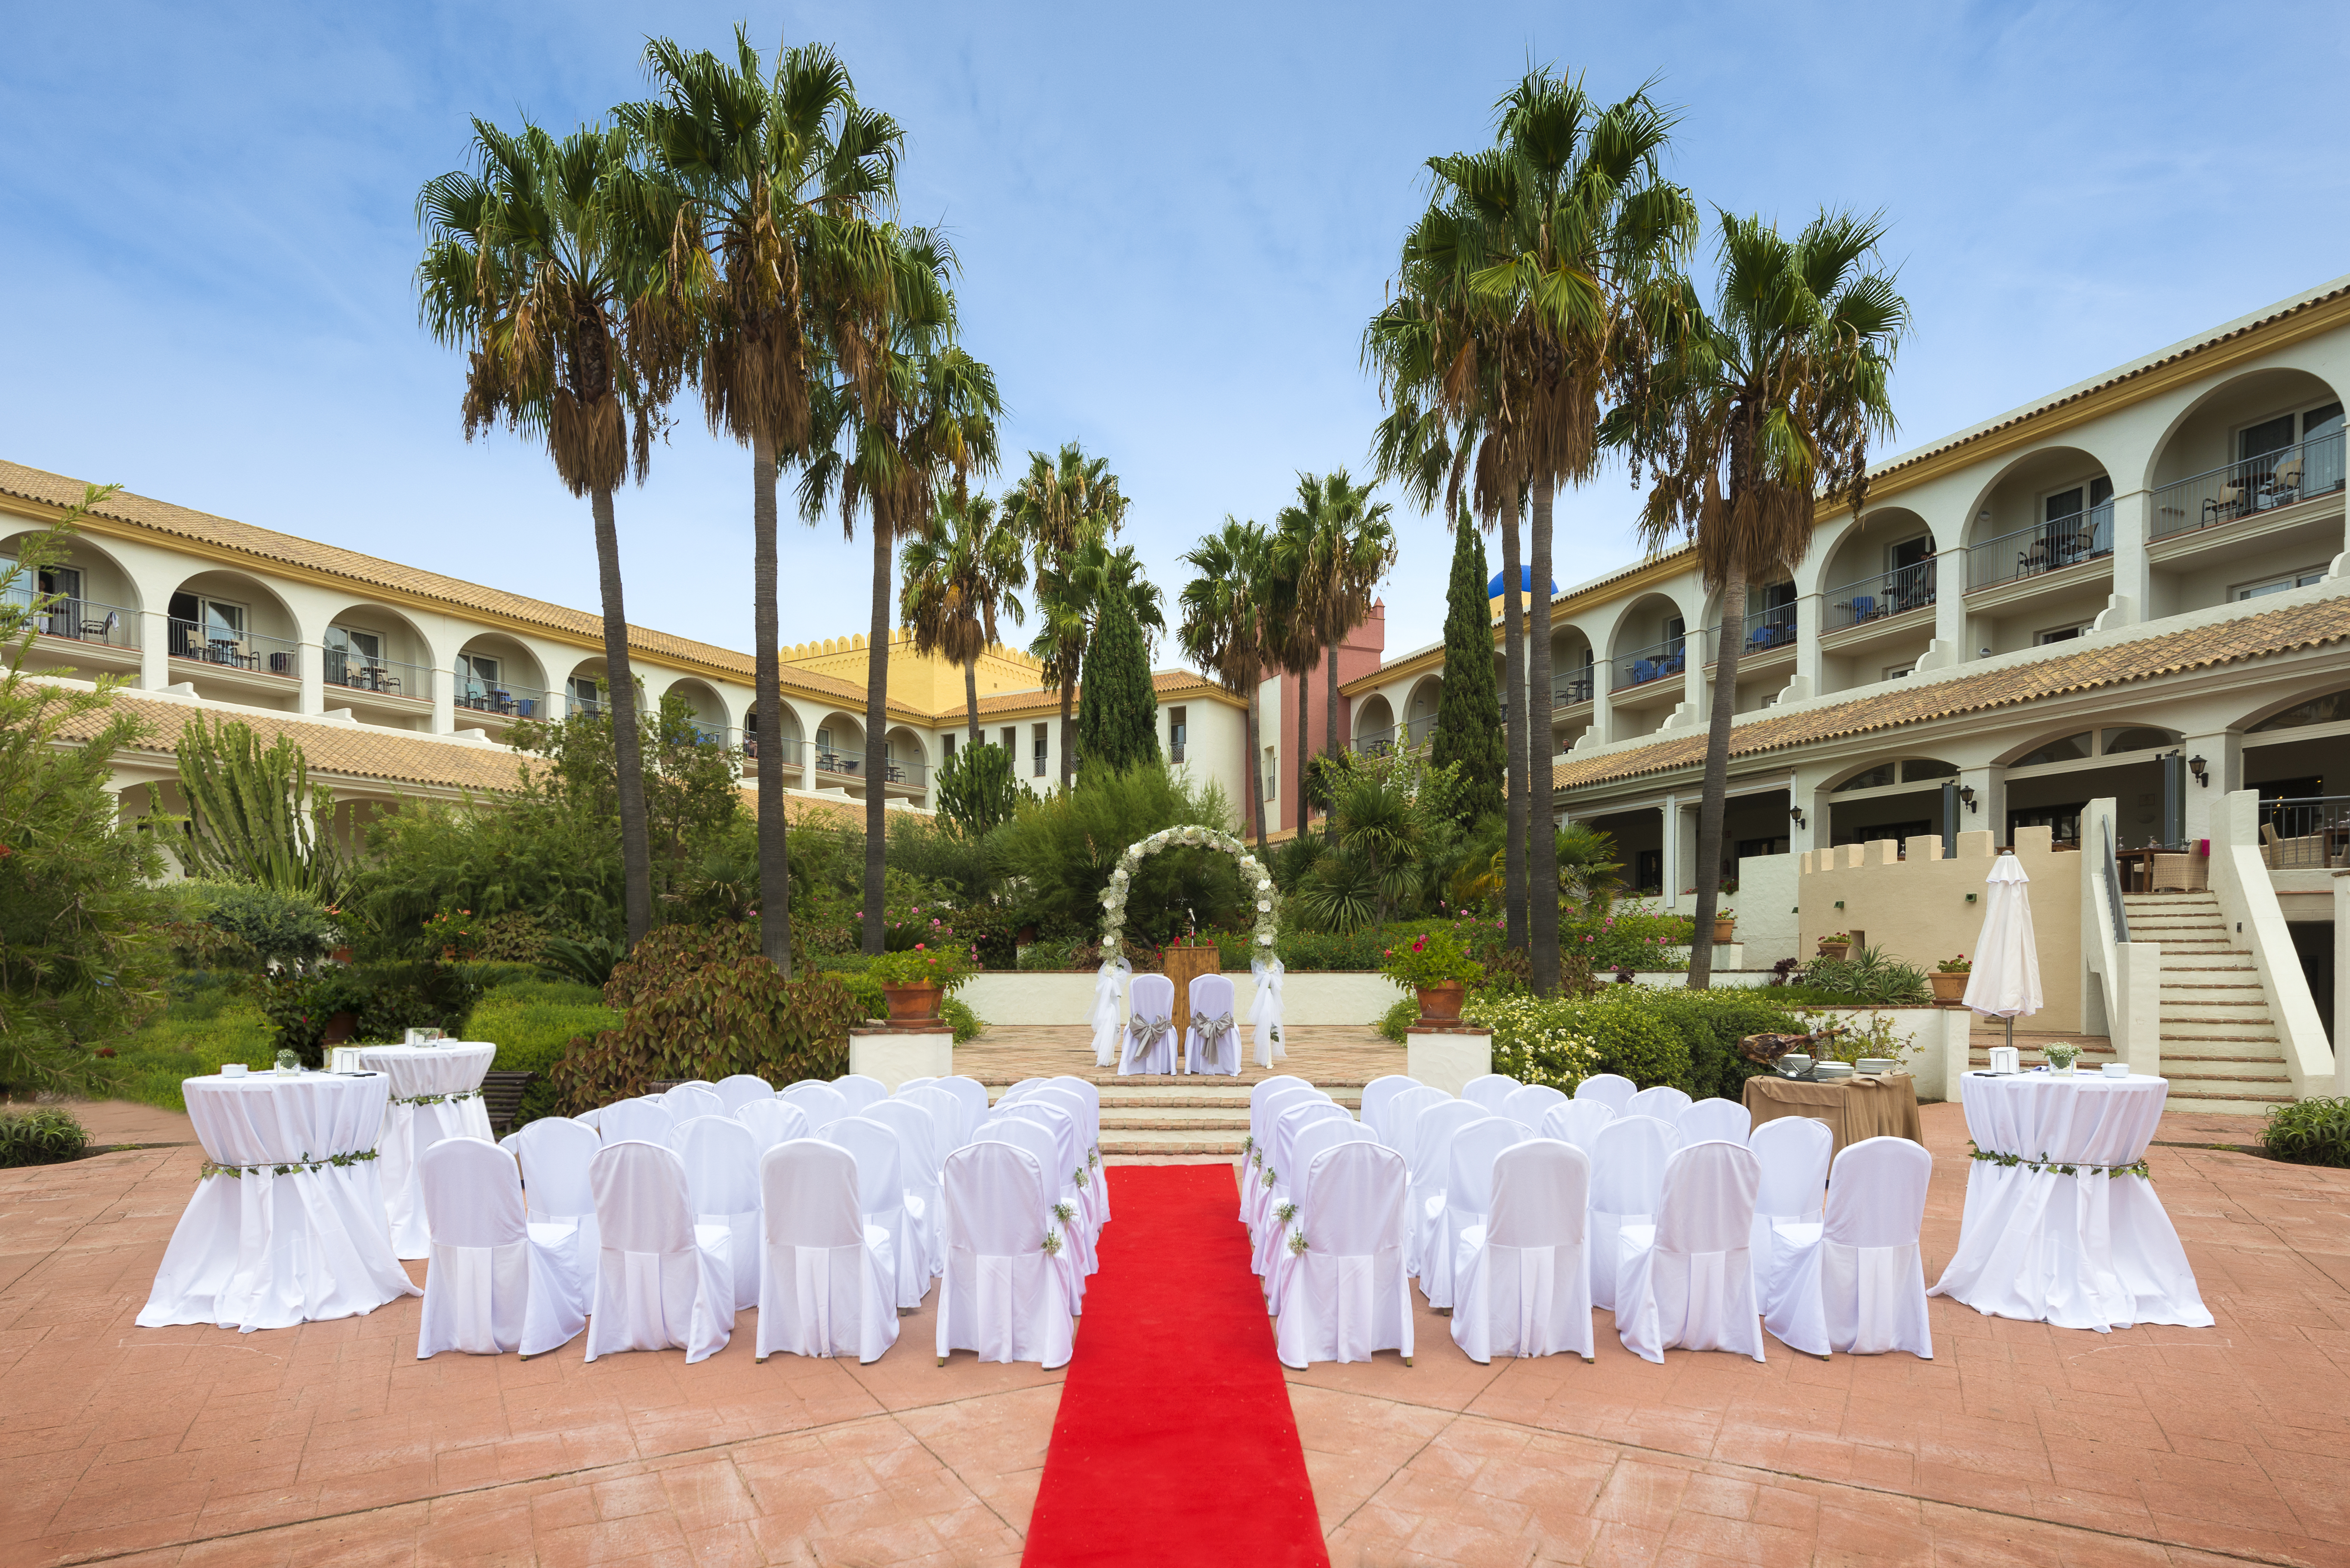 3 Ways To Choose The Best Wedding Venue For A Spanish Wedding. Photo Fuerte Conil